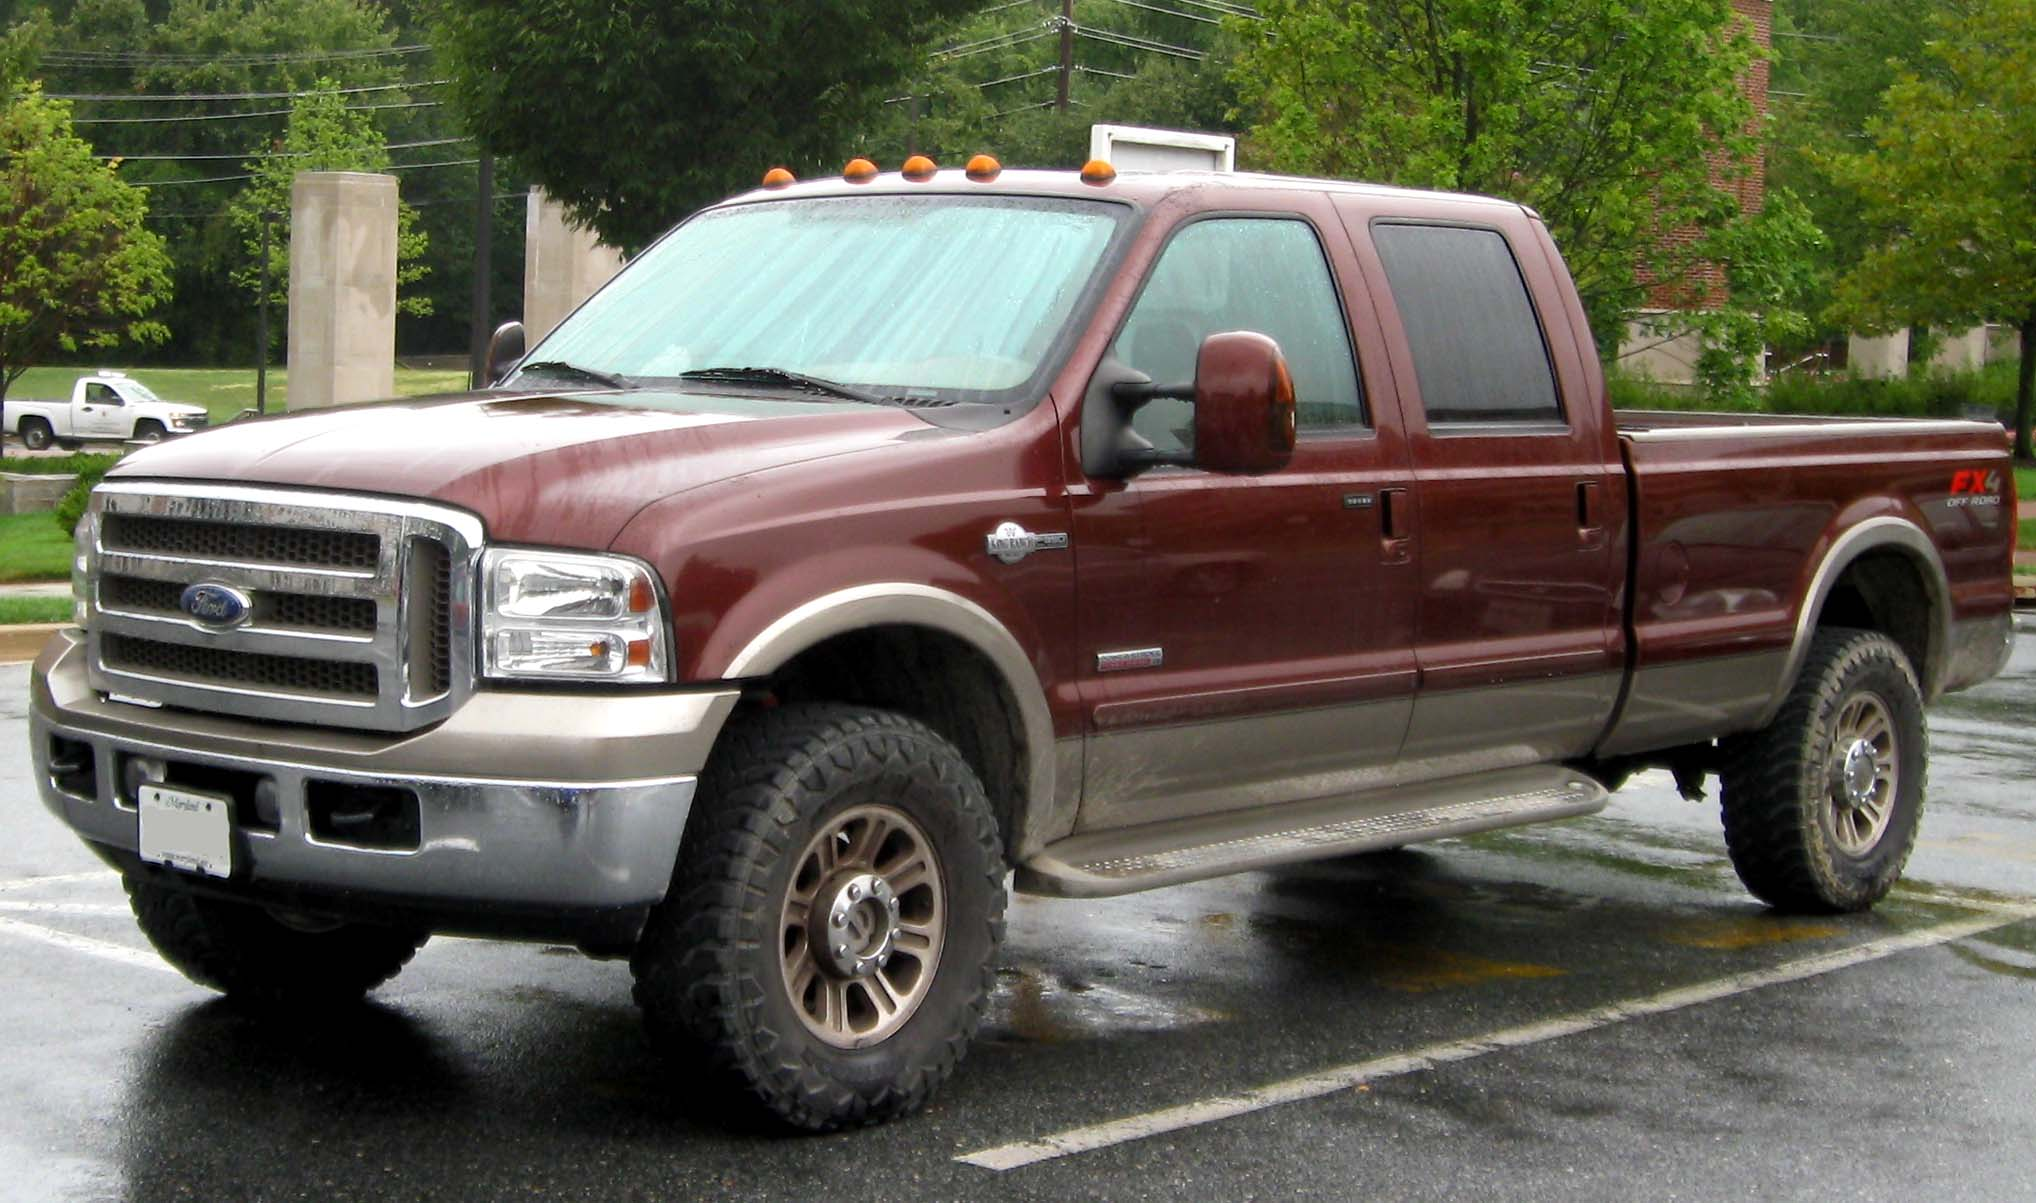 Ford F-350 Super Duty 2007 #2